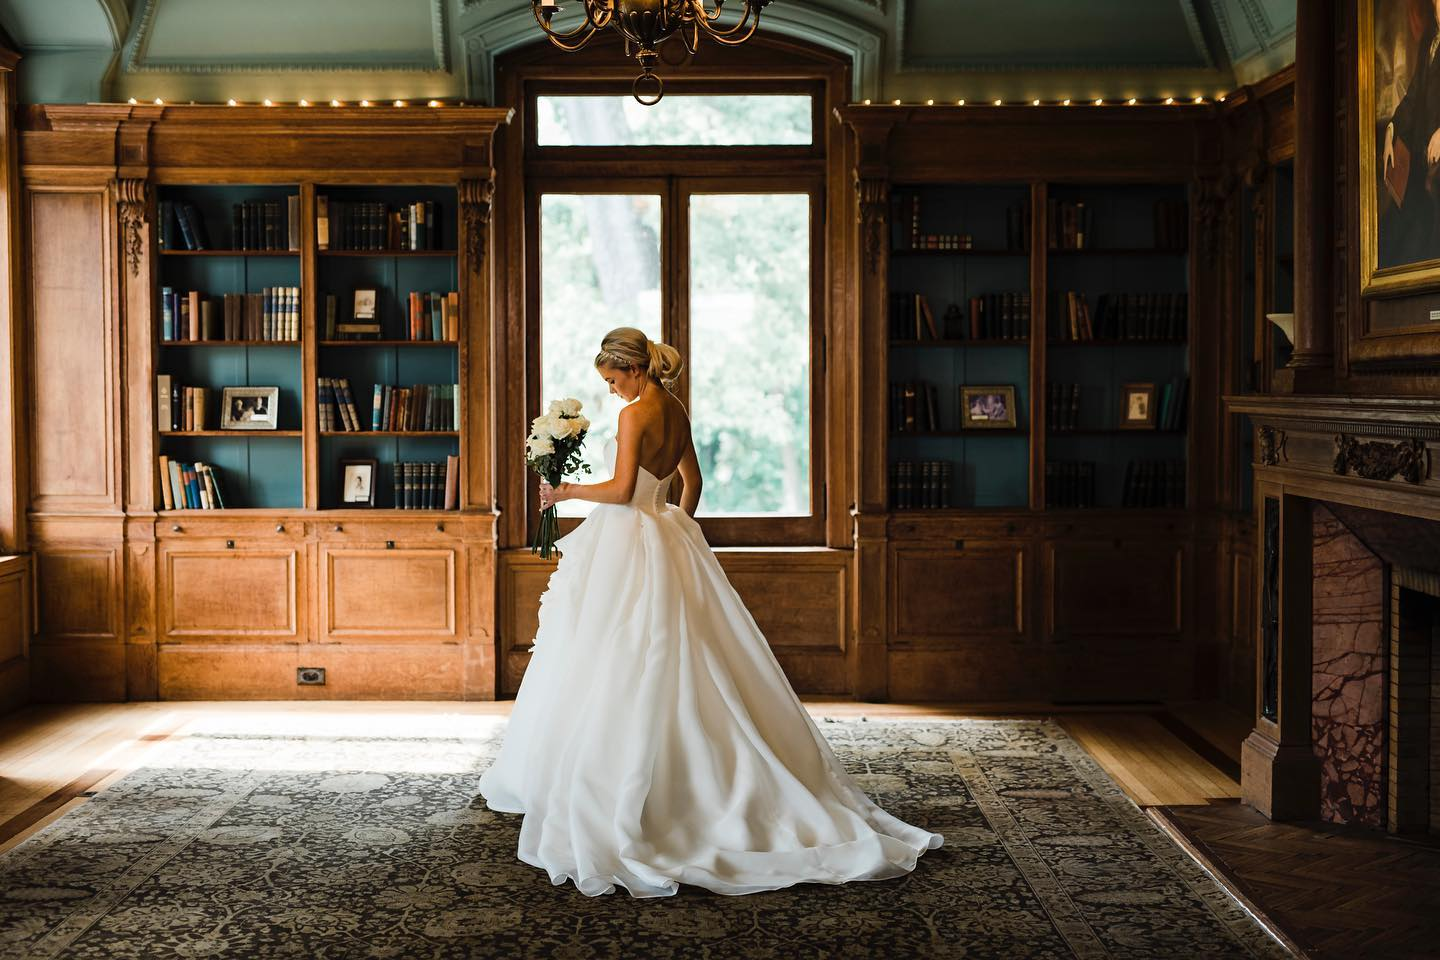 A portrait of a bride posing in front of a window in a vintage-themed room